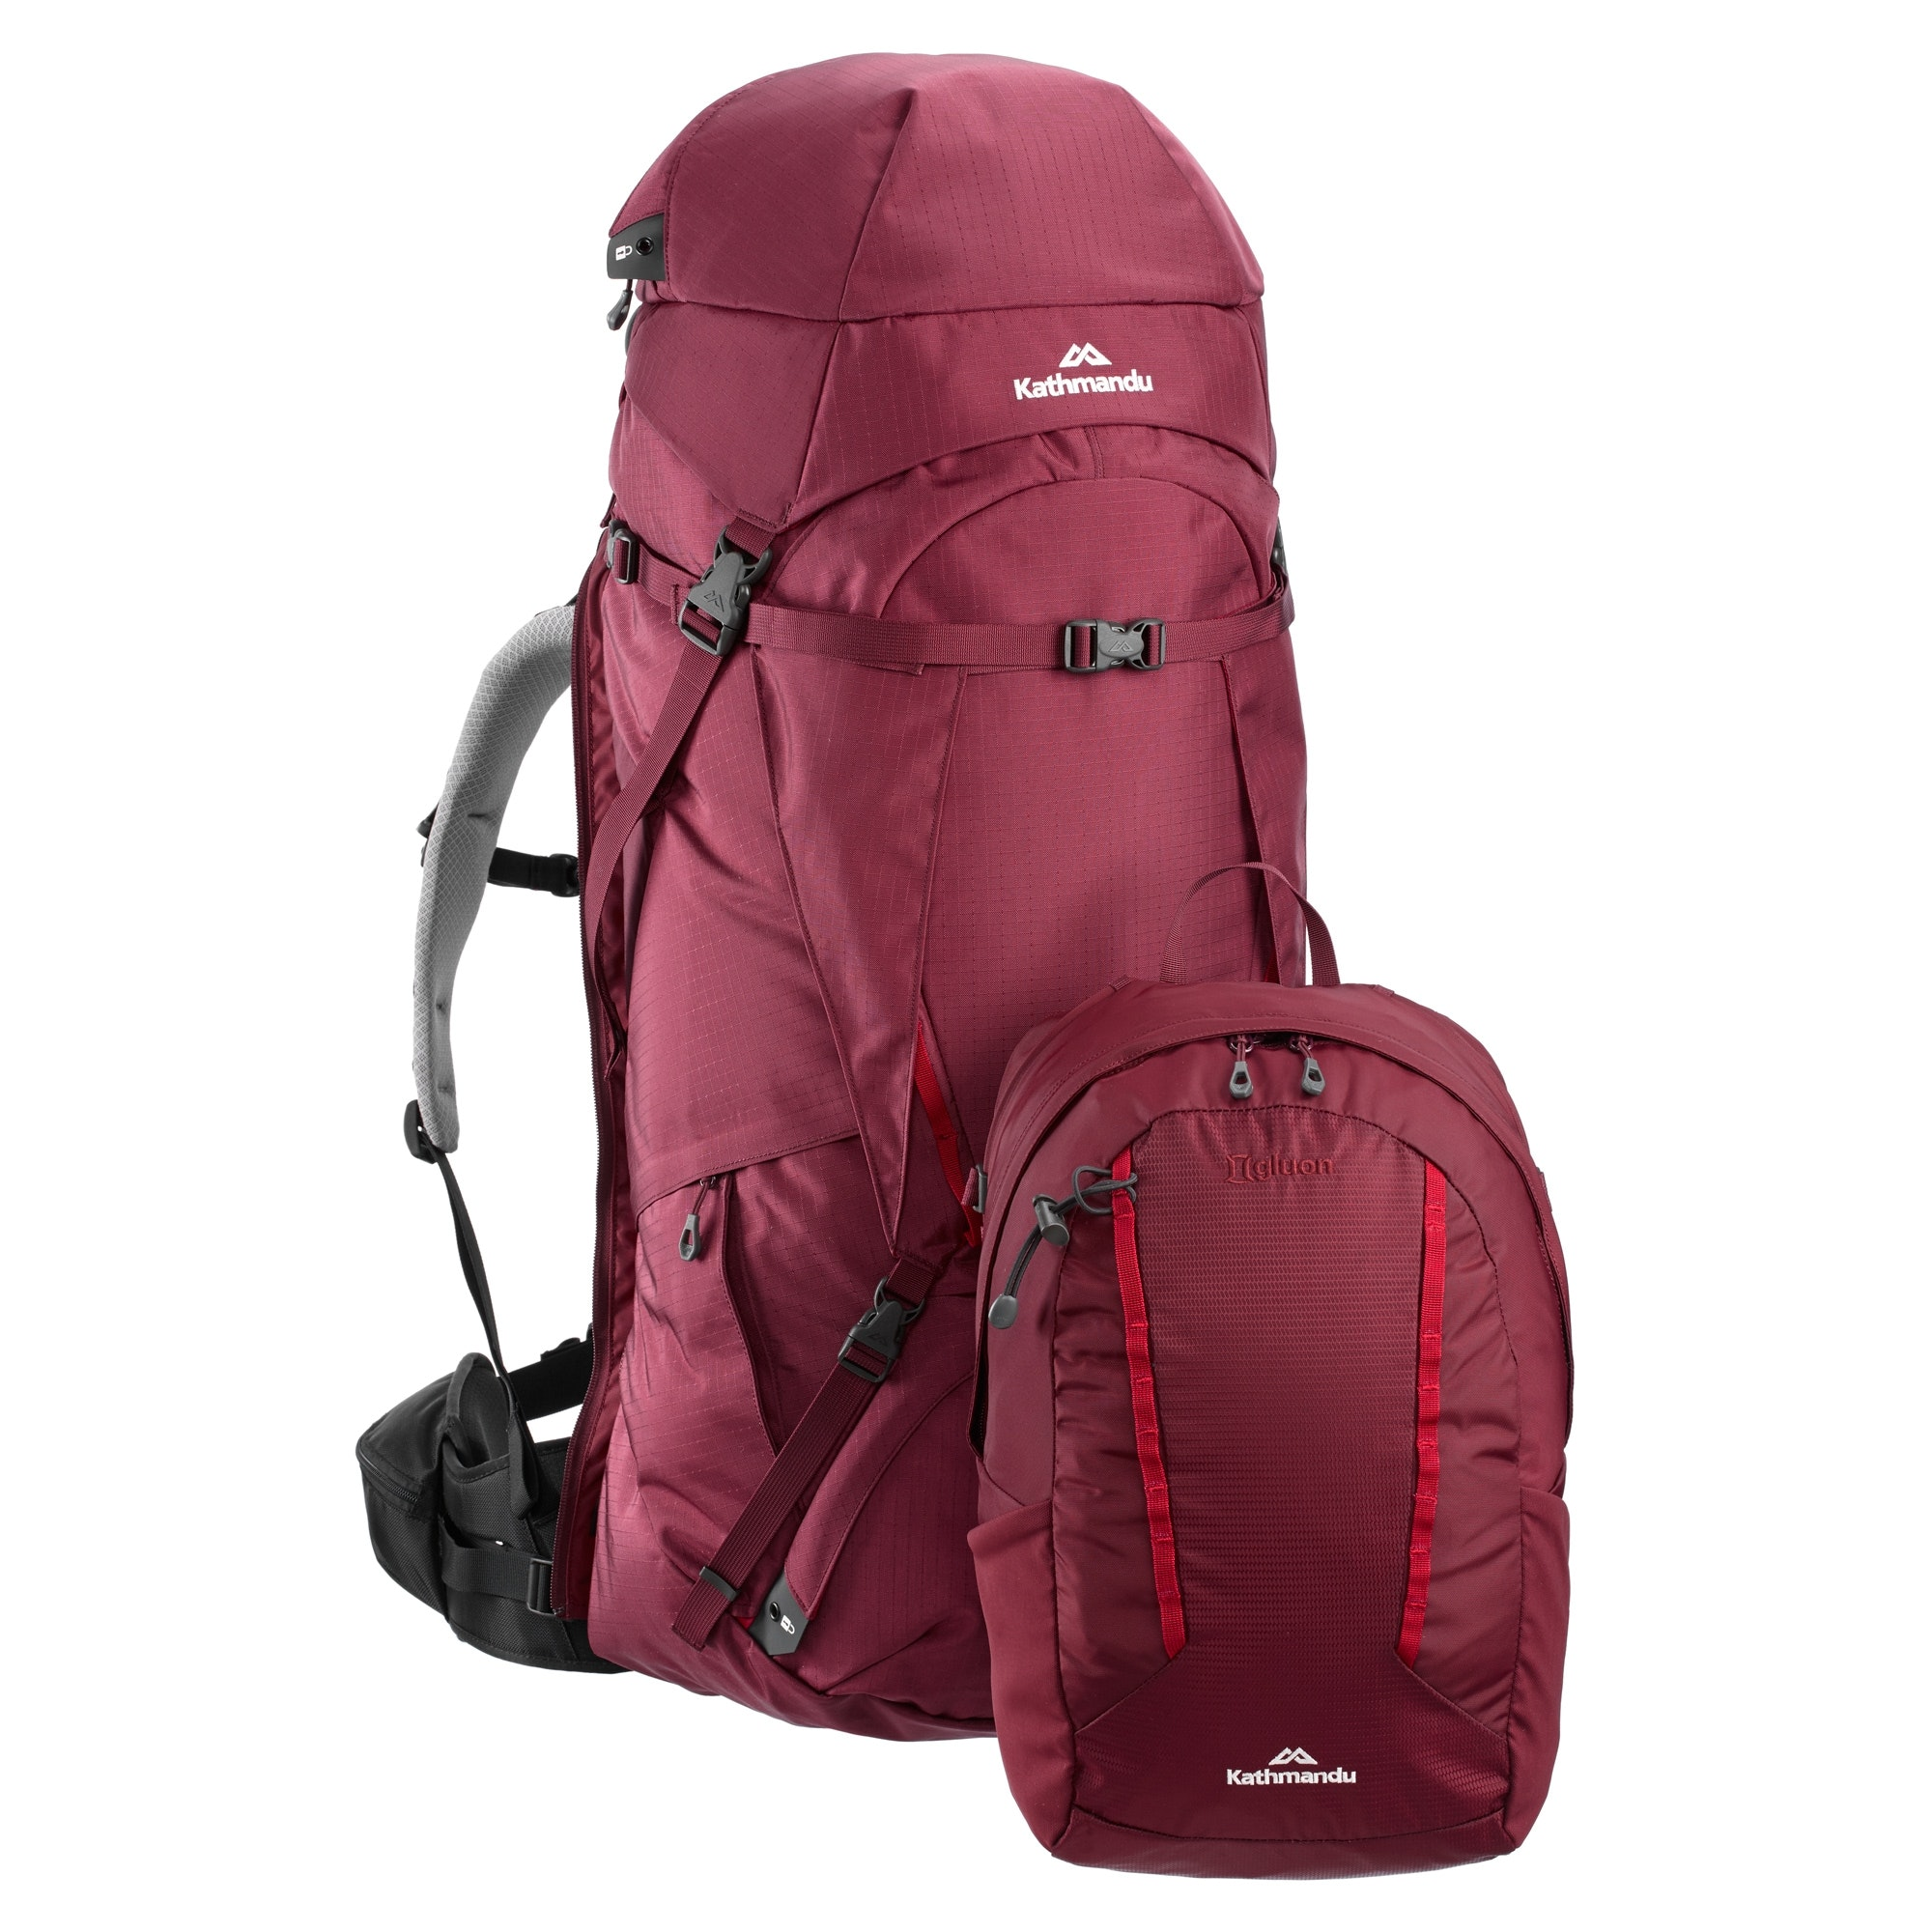 NEW-Kathmandu-Interloper-gridTECH-70L-Hiking-Travel-Backpack-Luggage-with thumbnail 13